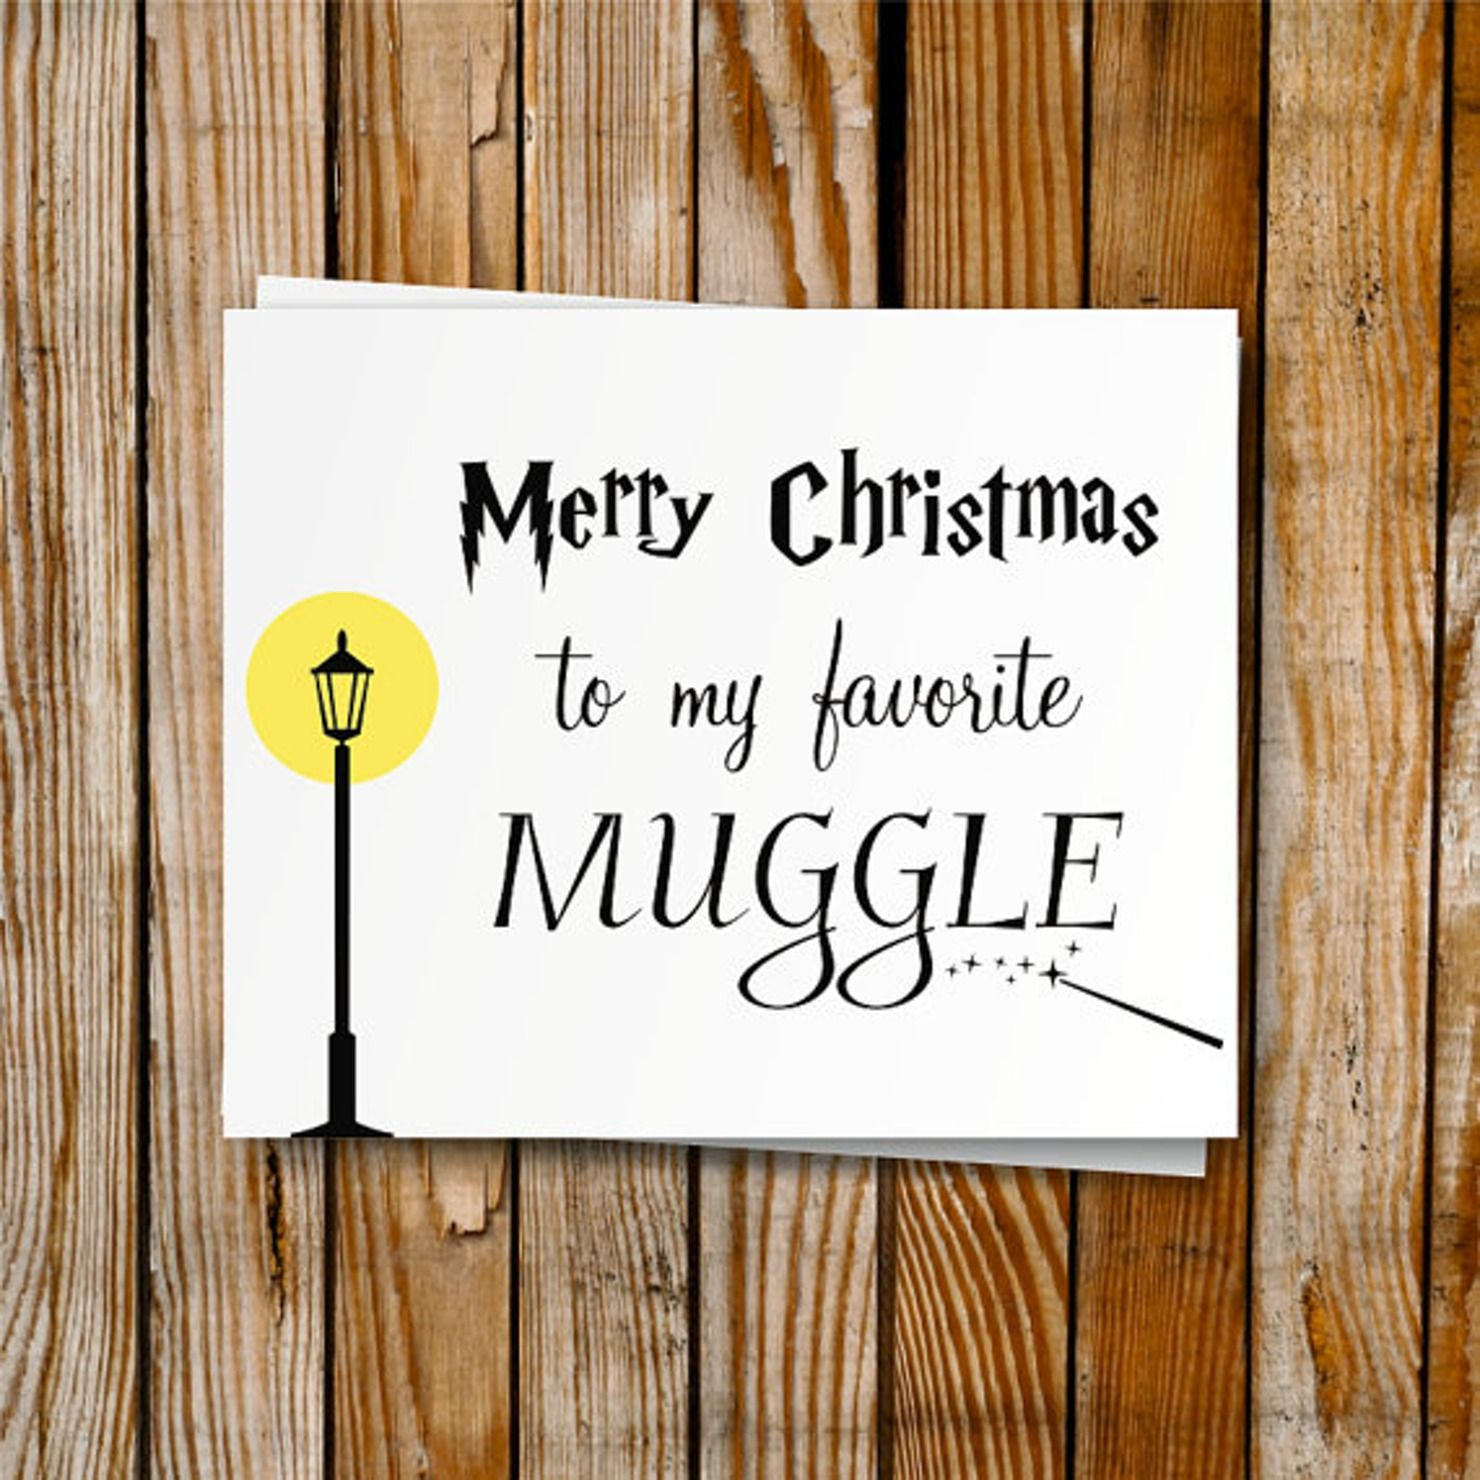 13 Harry Potter Christmas Cards You Ll Need This Holiday Season Harry Potter Birthday Cards Harry Potter Cards Harry Potter Gifts